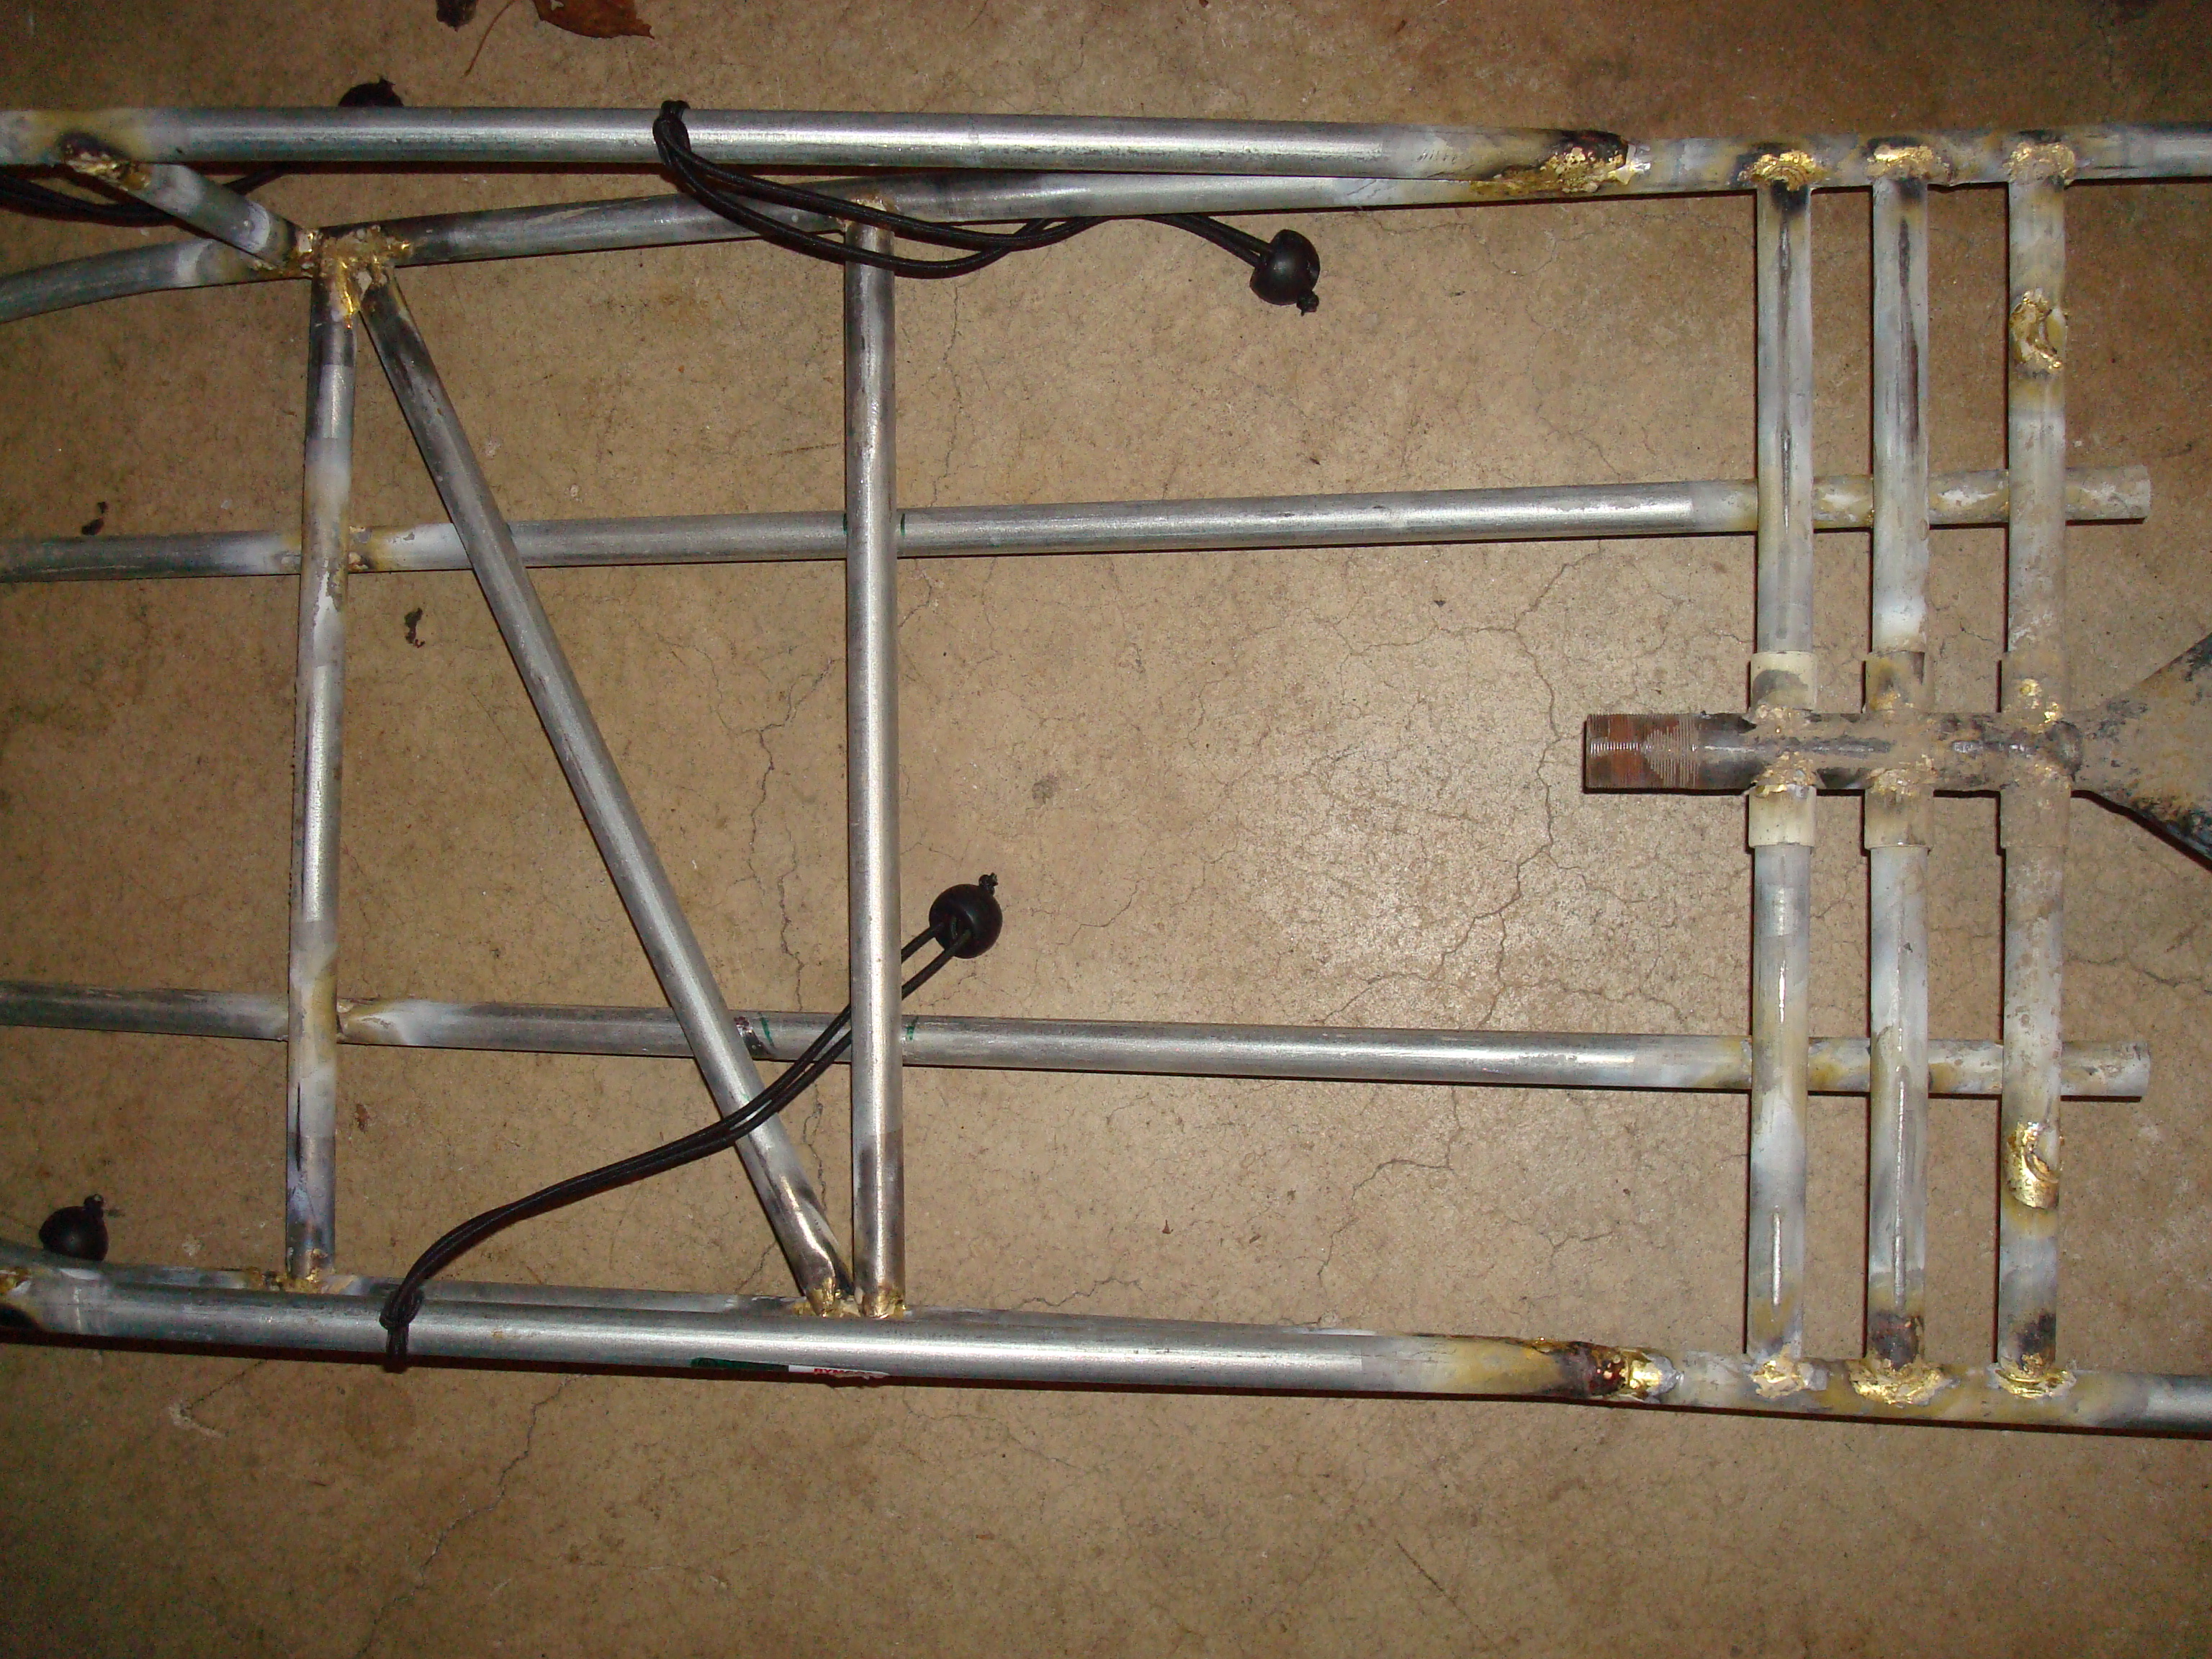 Picture of Bottom Braces and Wheel Guard